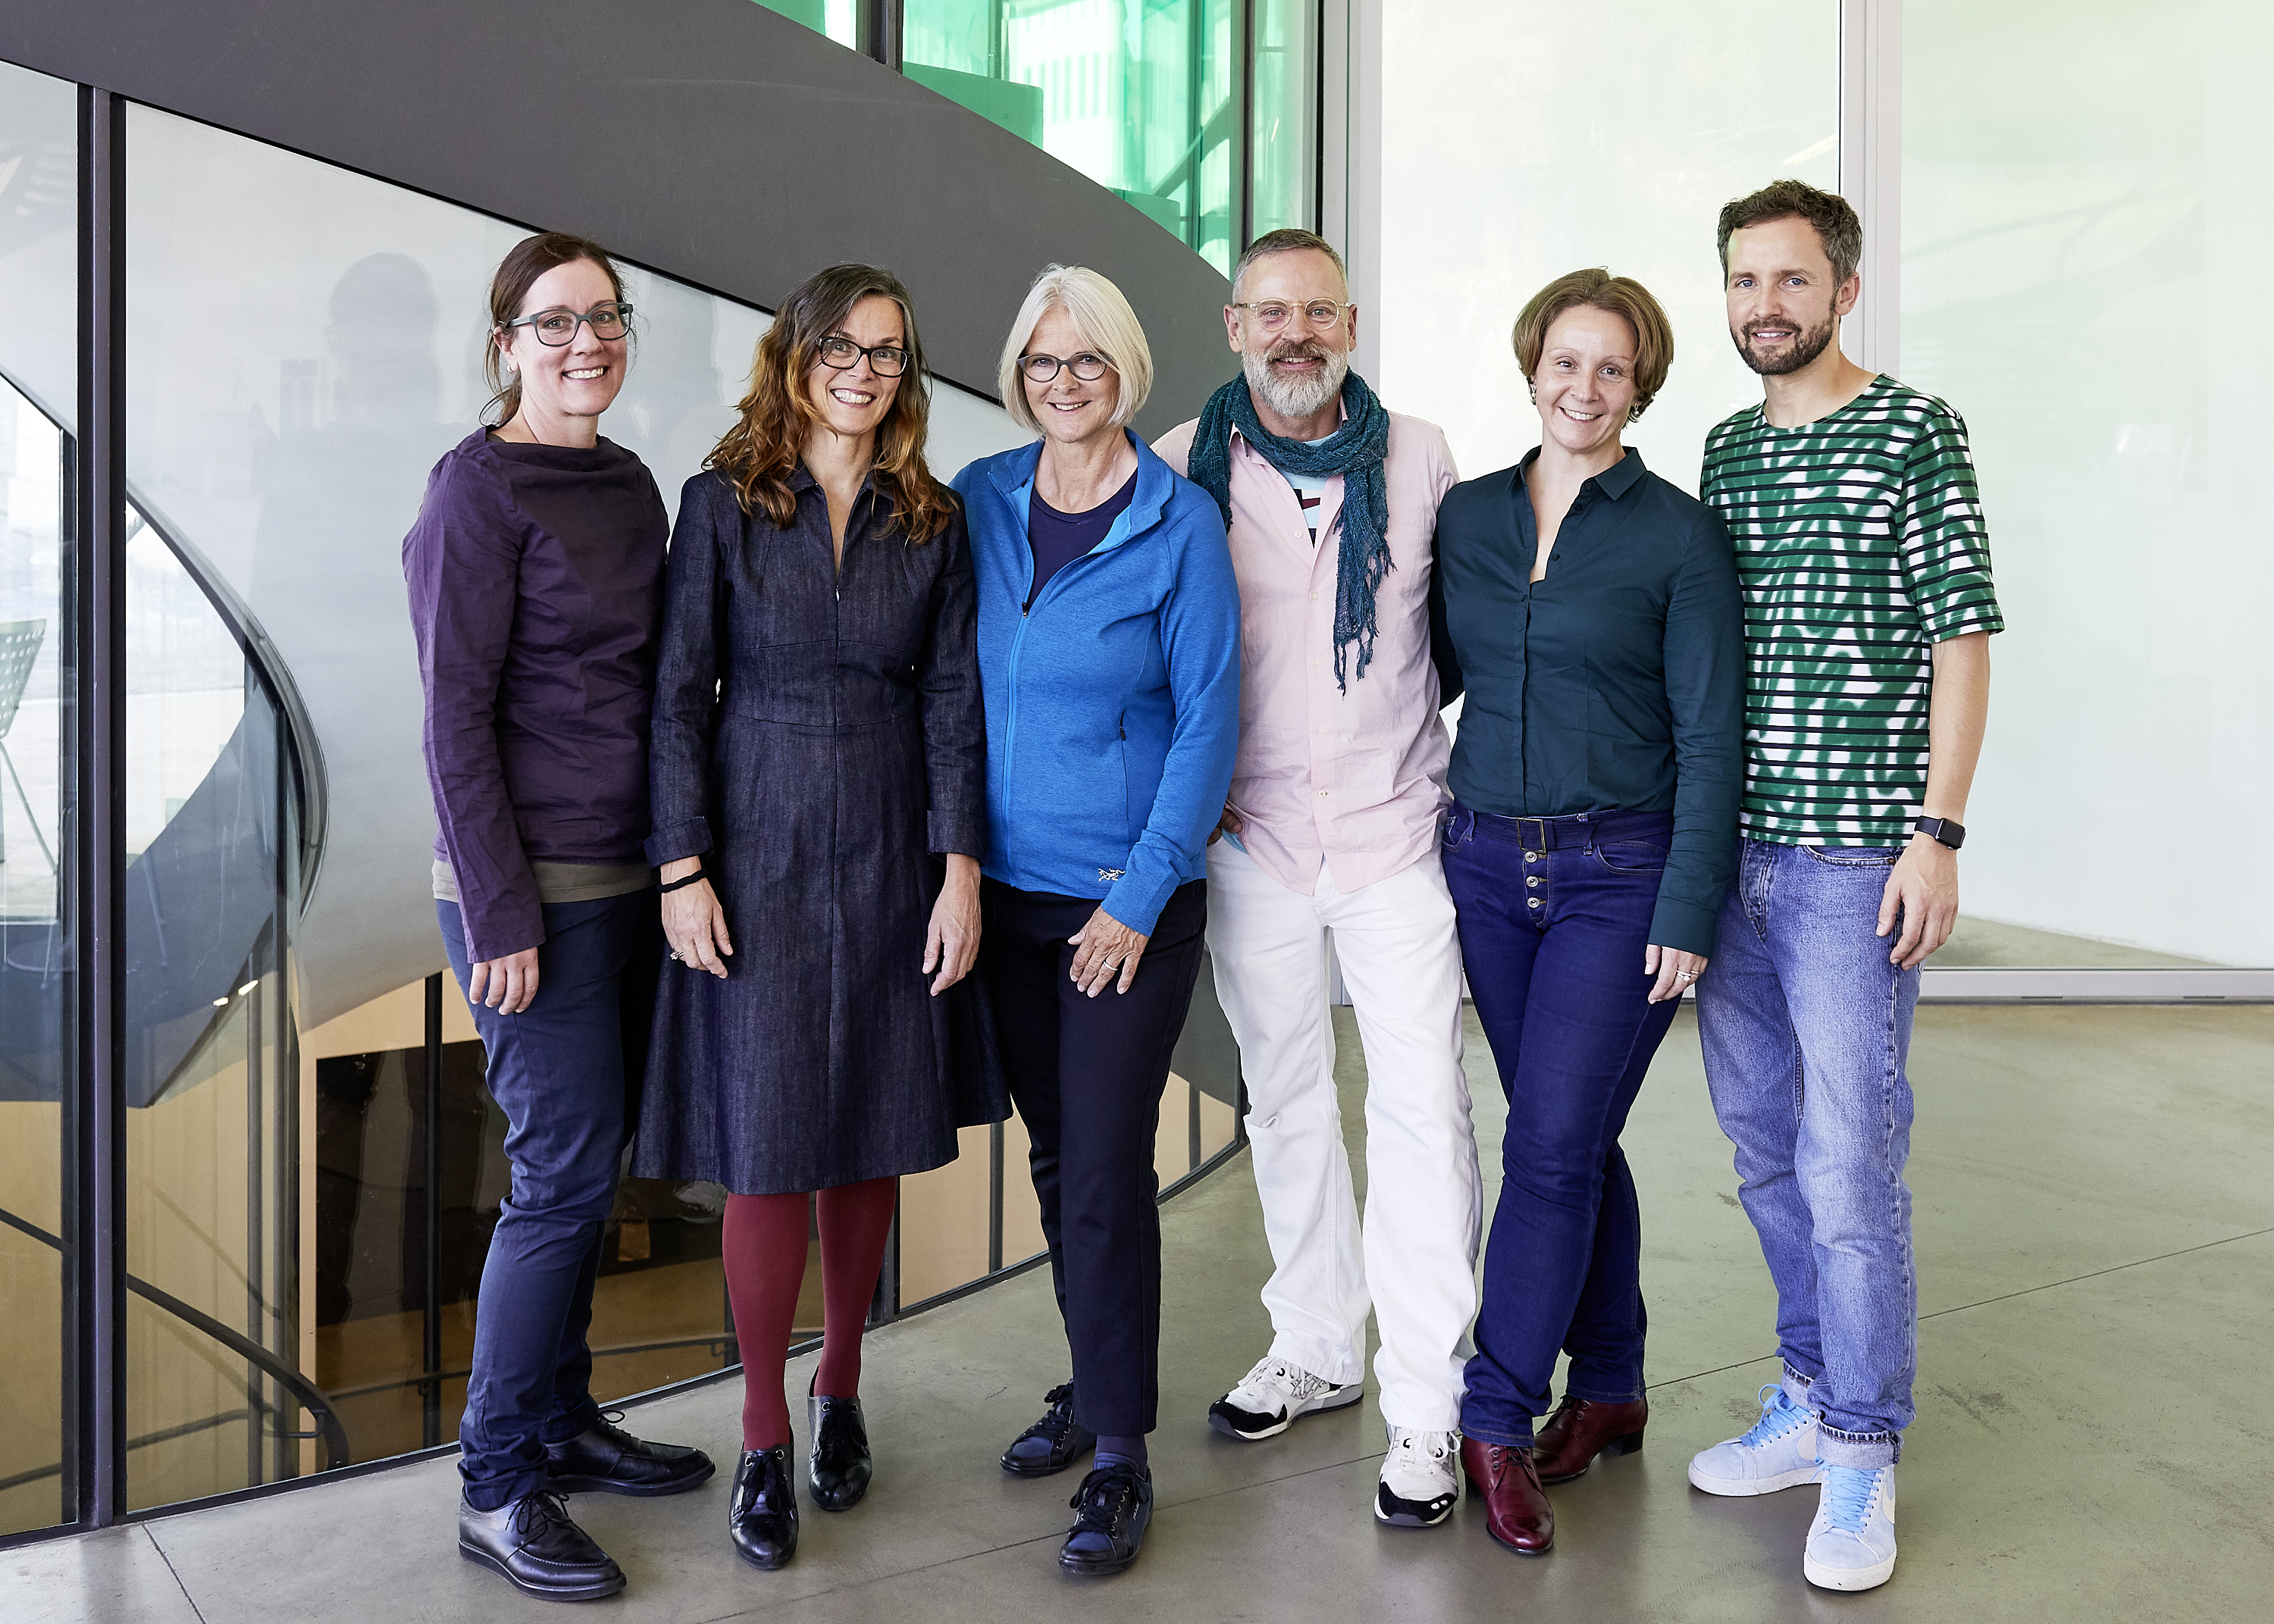 Myrta Frohofer, Julia Antoniou, Angela Wettstein, Bettina Uhlmann, Philipp von Arx